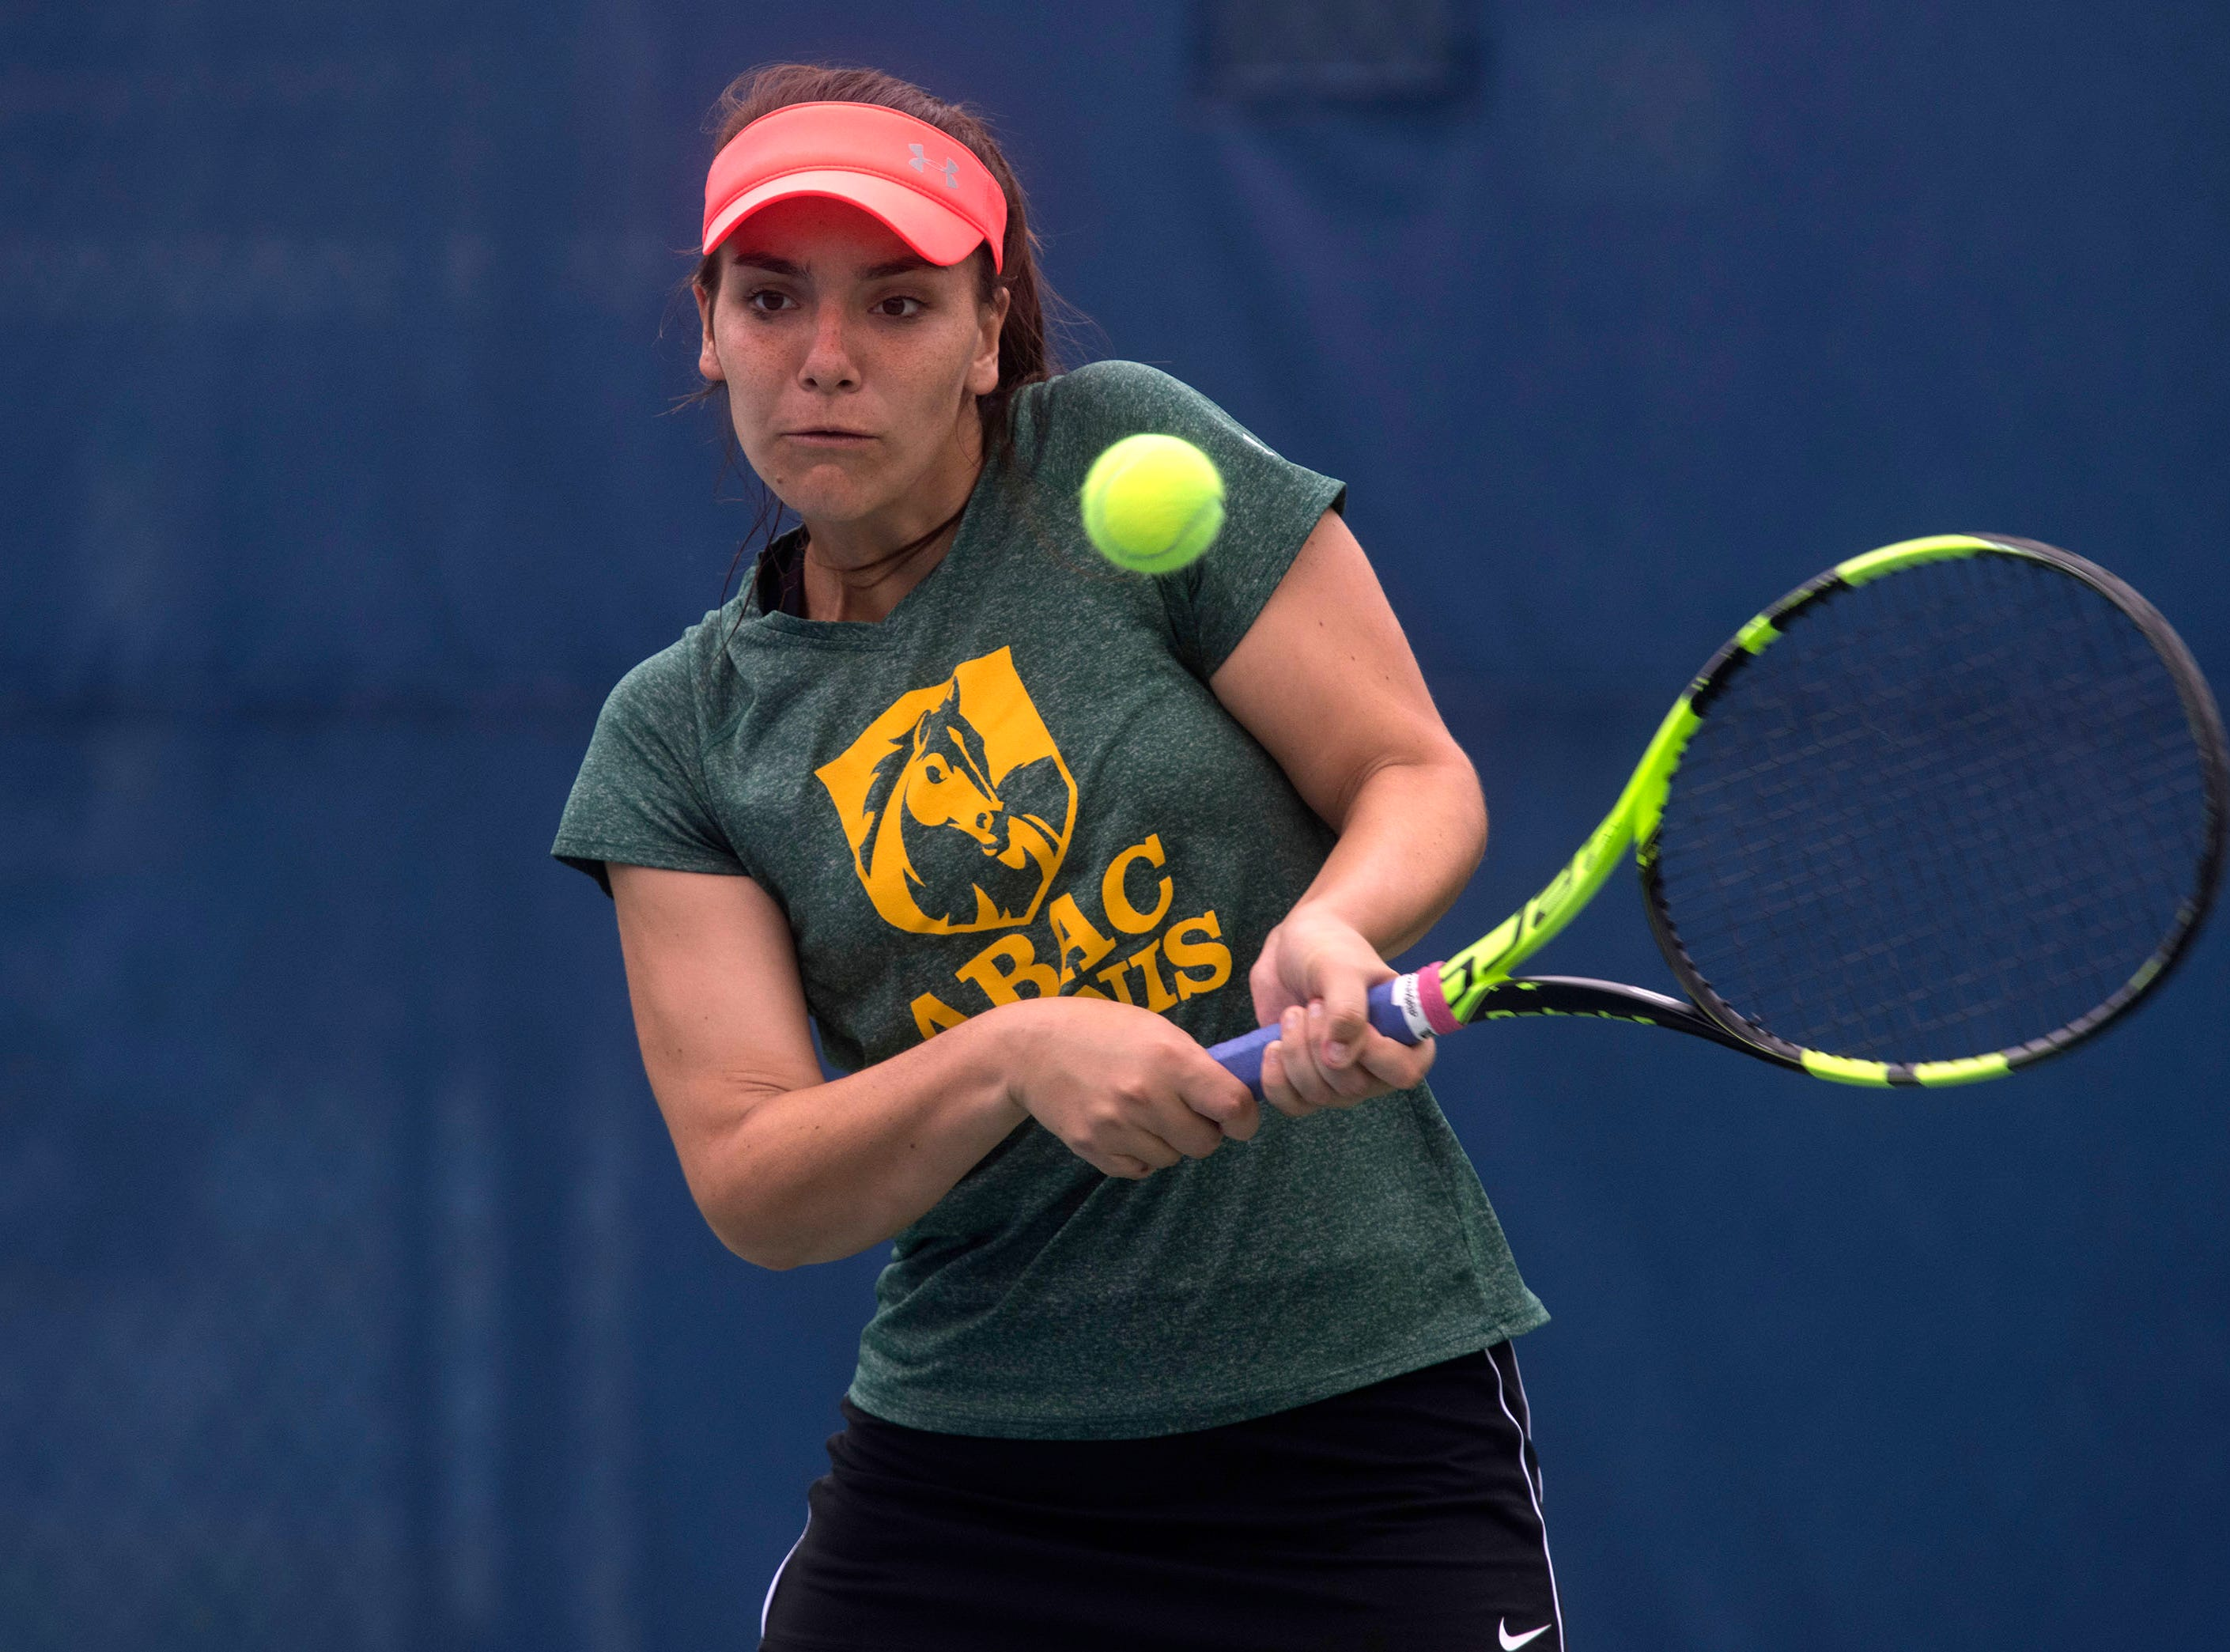 Agustina Diaz from Abraham Baldwin Agricultural College, returns the serve from the Seward County Community College team during doubles play in the Western Gate Tennis Invitational tournament at UWF on Monday, March 11, 2019. Seward won the match 8-3.